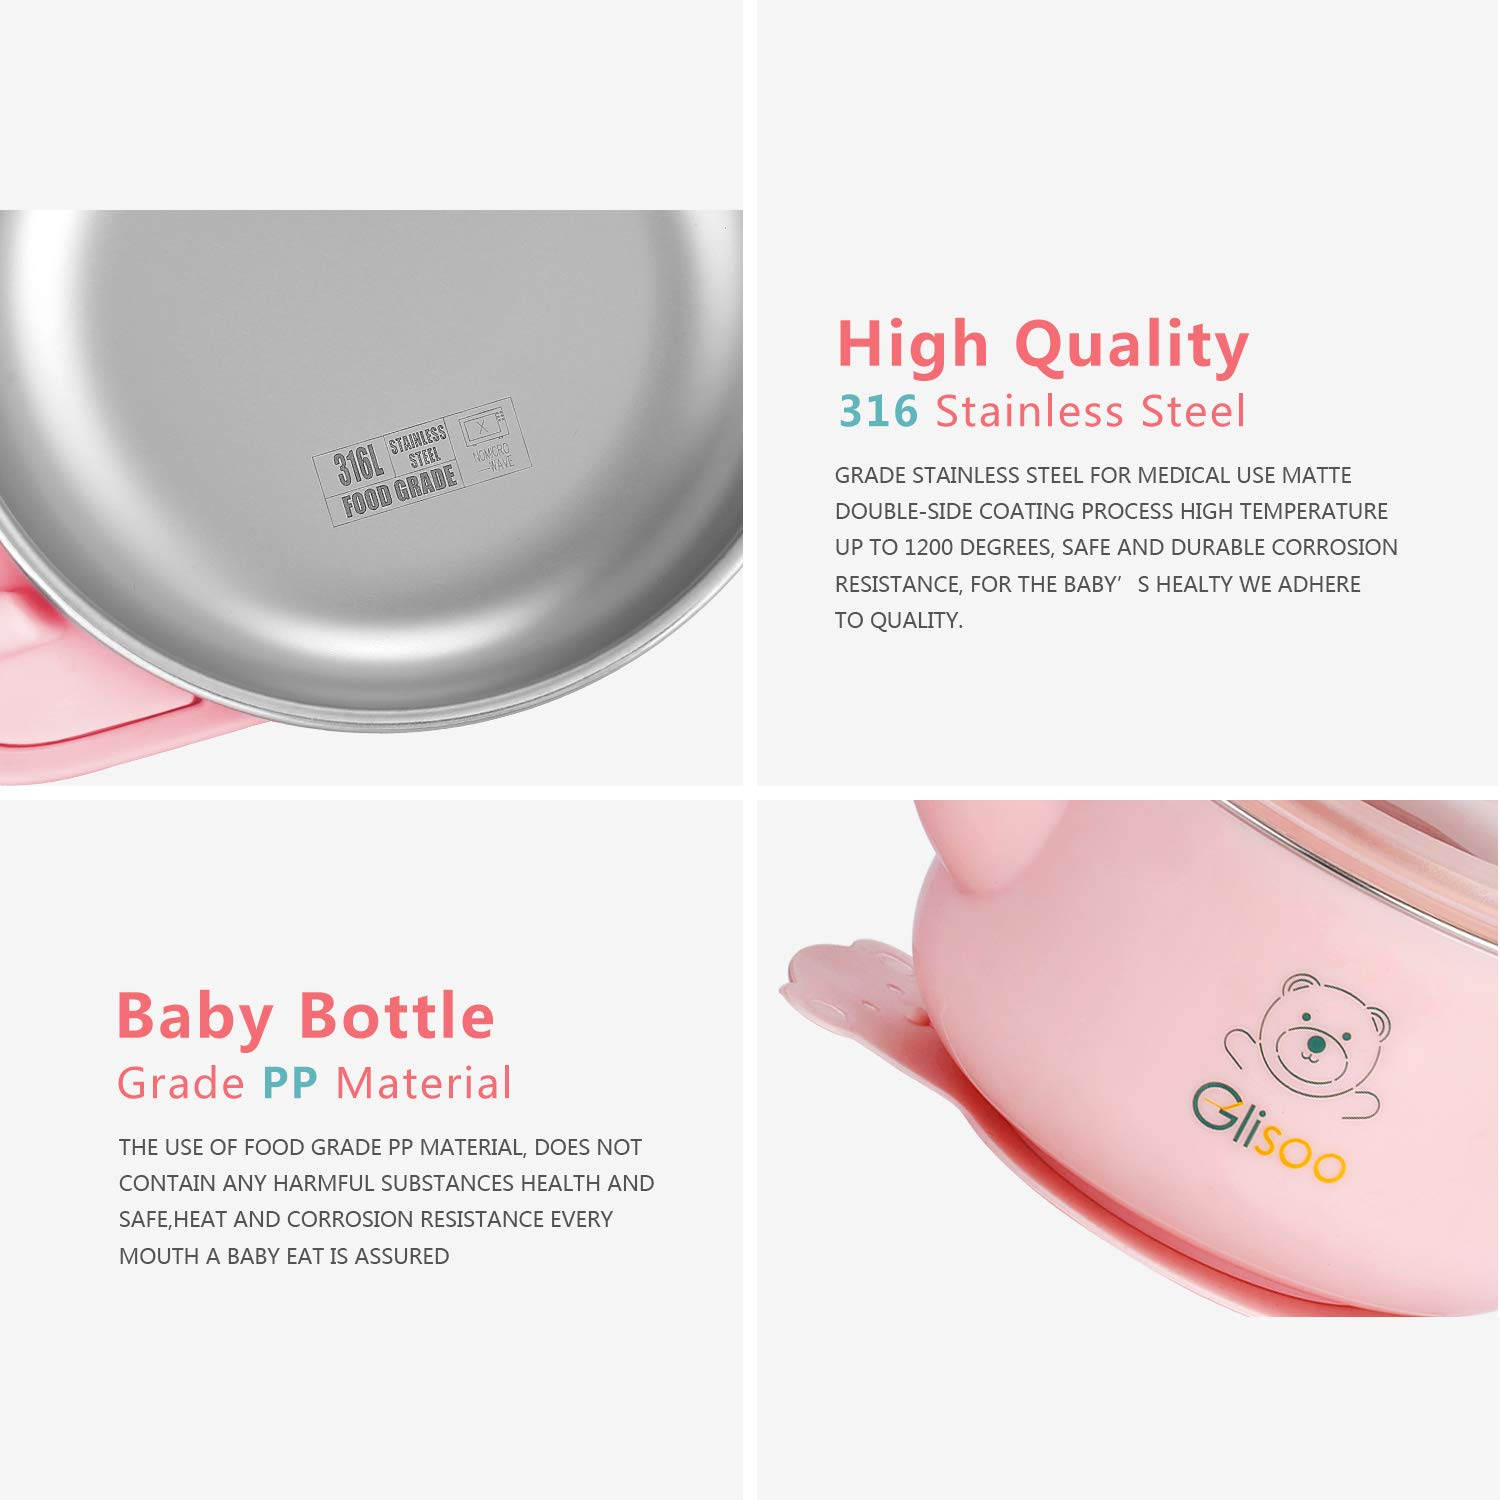 BPA Free Baby Feeding Set, Feeding Bowl with Lid, Salad Bowl, Milk Cup,Spoon and Fork for 6m Toddlers,316 Stainless Steel,Gift Set Tableware Set by Glisoo Pink